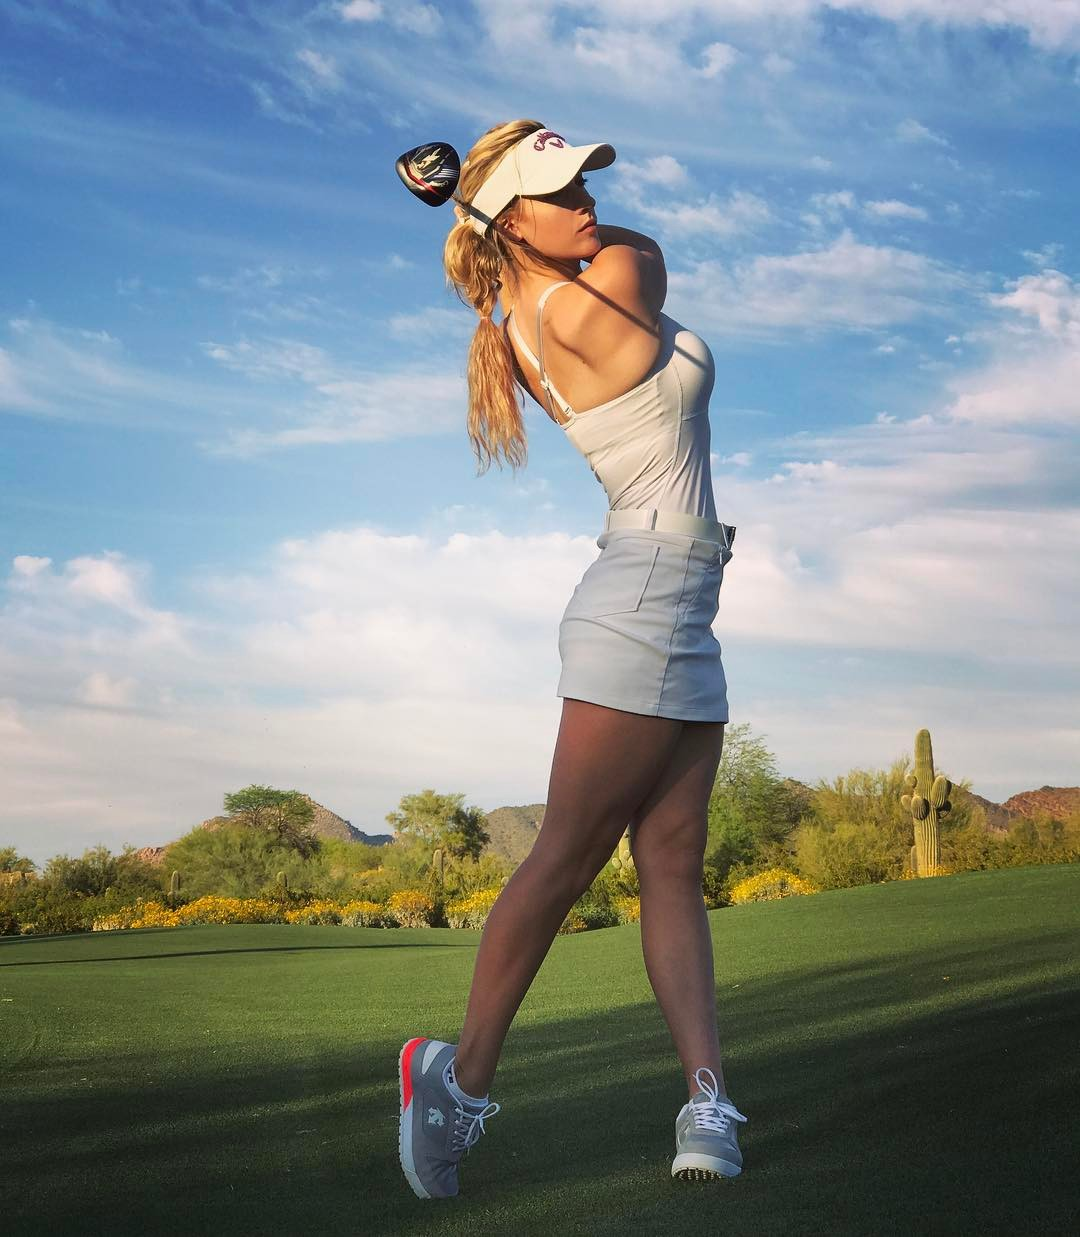 12 - Paige Spiranac Is The Hottest Professional Female Golfer in History